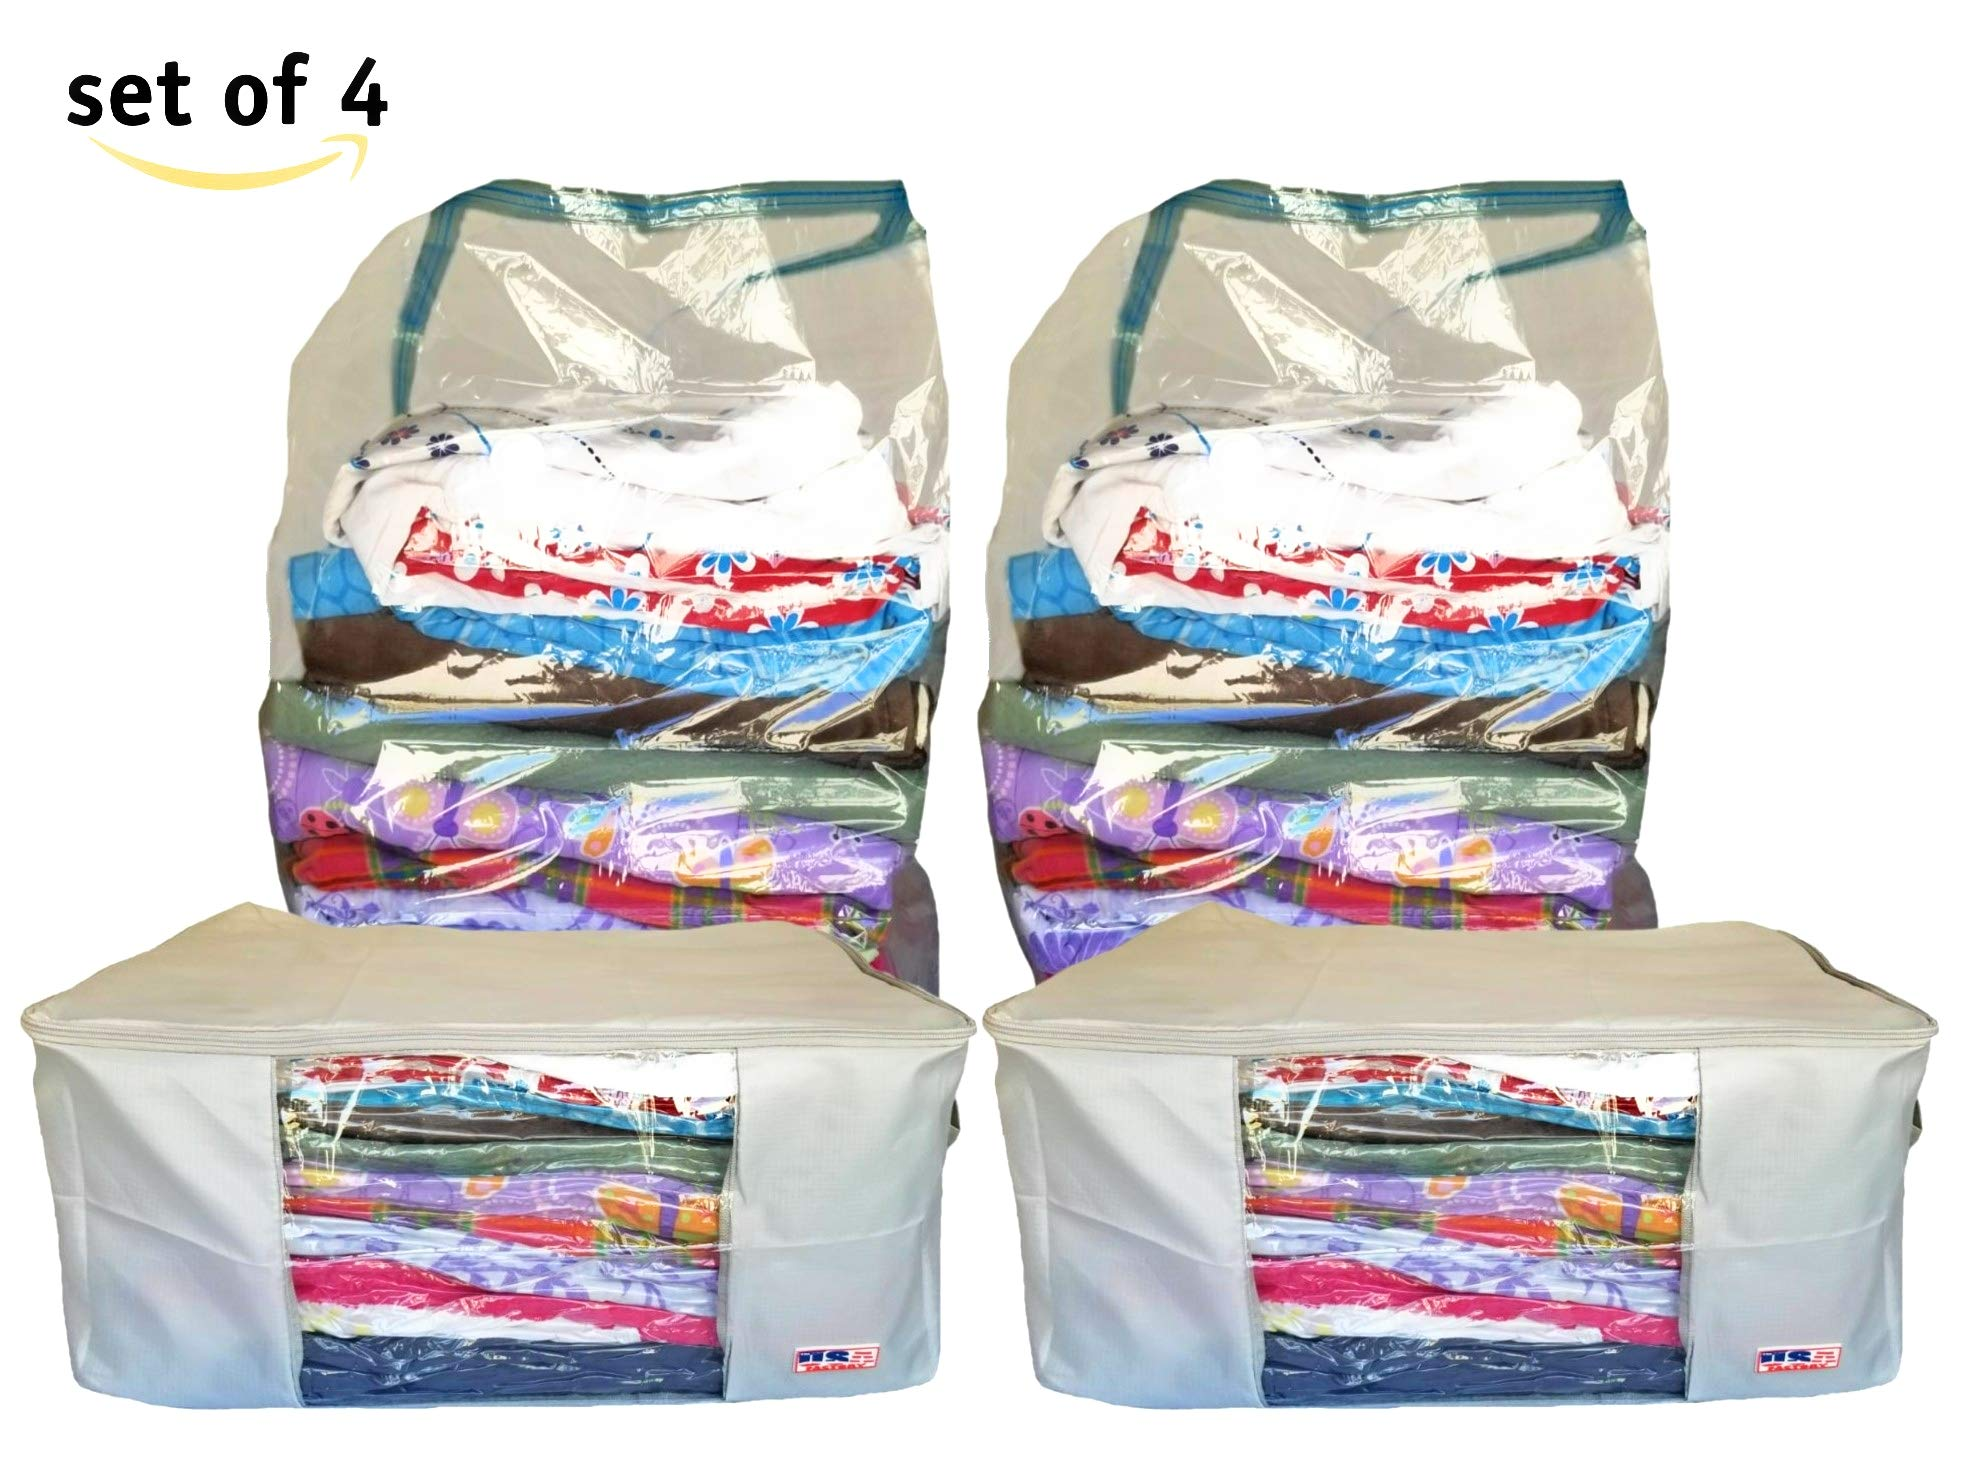 THE USA FACTORY Blankets Storage Bags and Vacuum Plastic Bags to Store Pillows,comforters,Blankets,Winter Clothing,Sleeping Bags,Off-Season Clothes,Under Bed Organizer,etc. by THE USA FACTORY